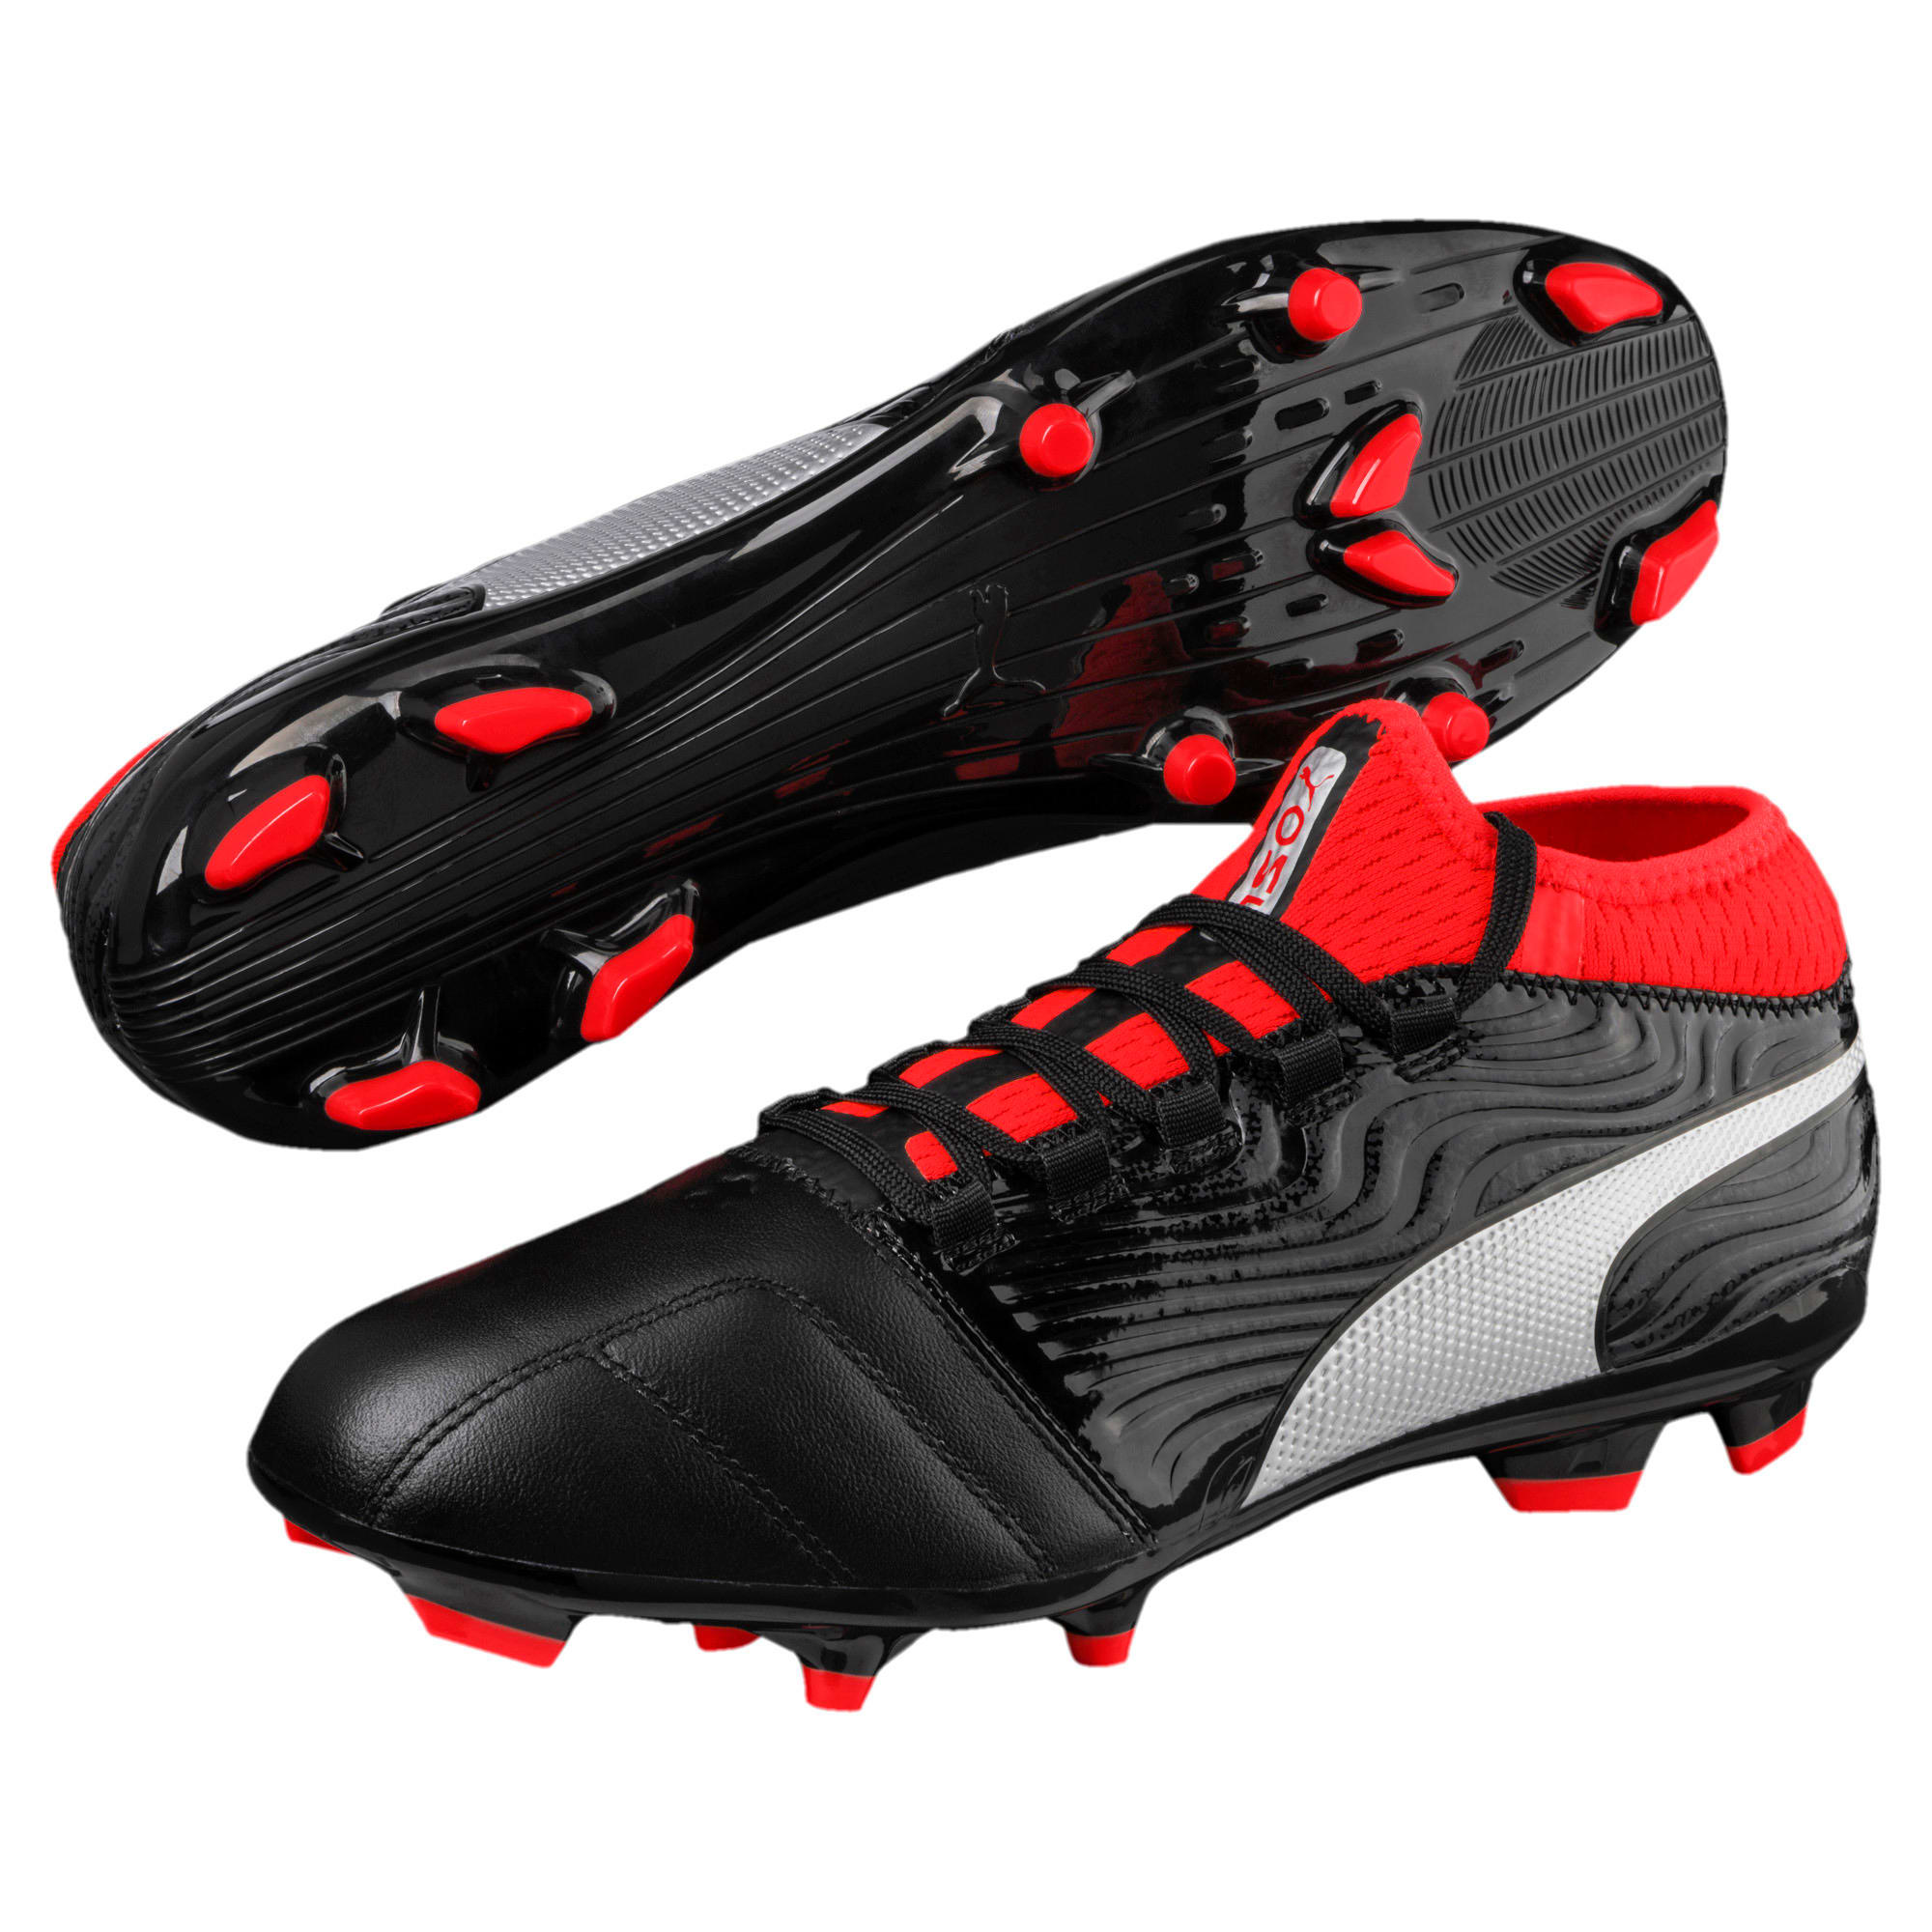 Thumbnail 2 of ONE 18.3 FG Men's Football Boots, Black-Silver-Red, medium-IND